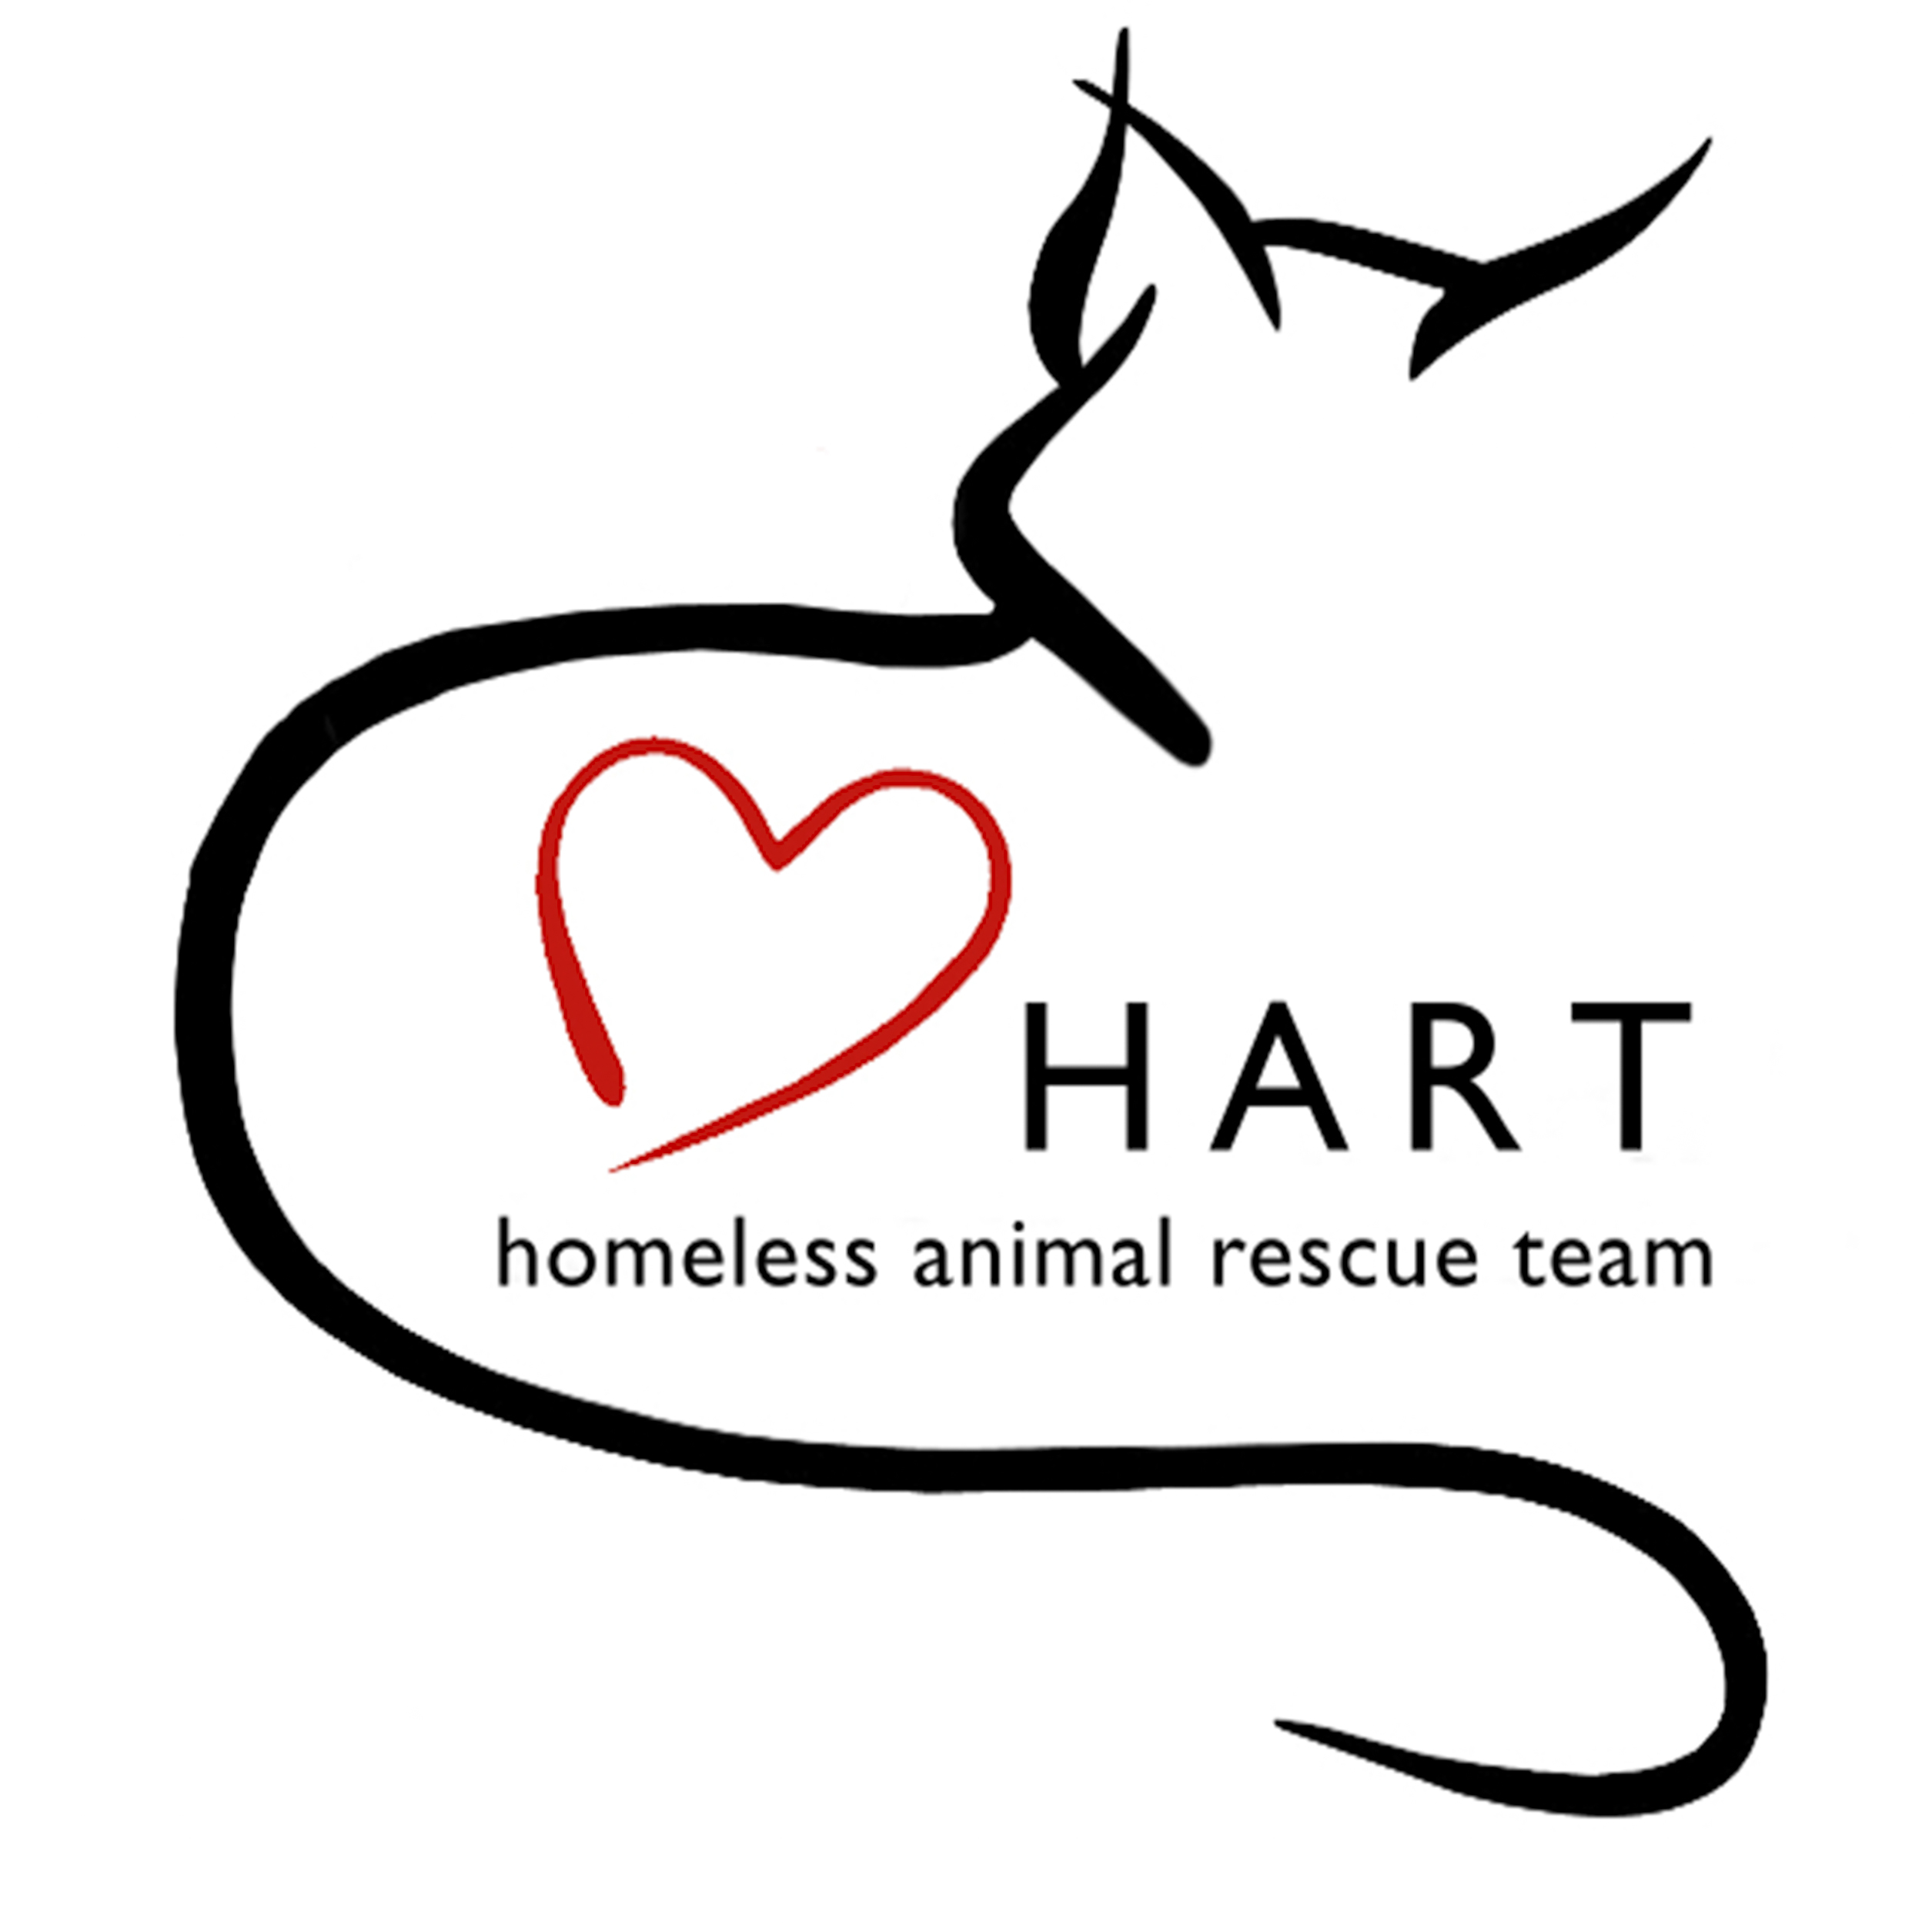 Homeless Animal Rescue Team